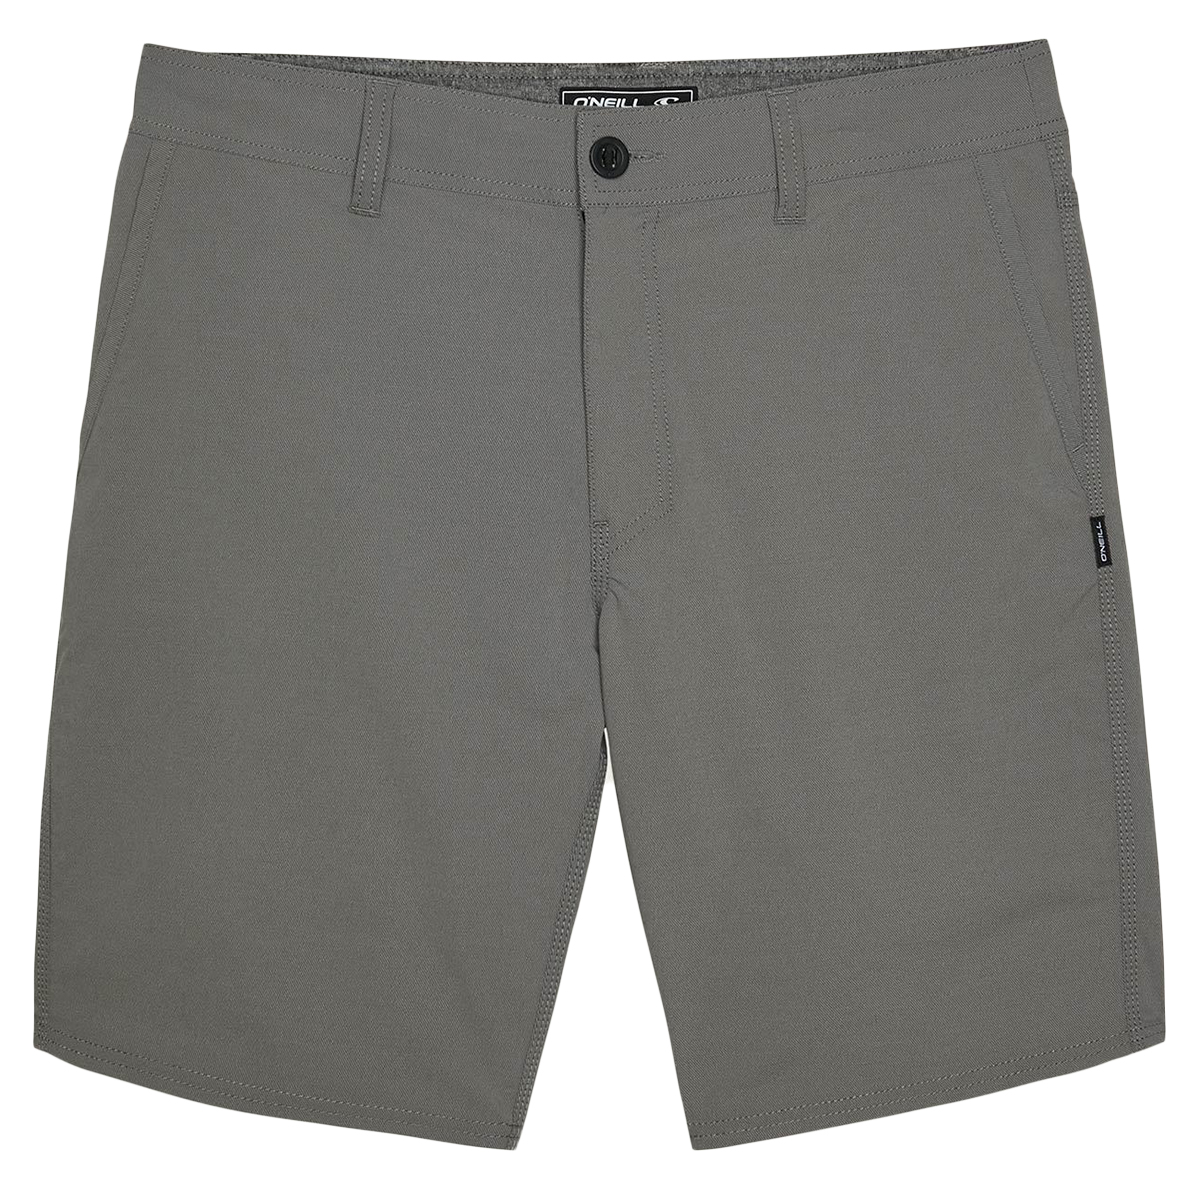 O'neill Men's Stockton Hybrid Shorts - Black, 32